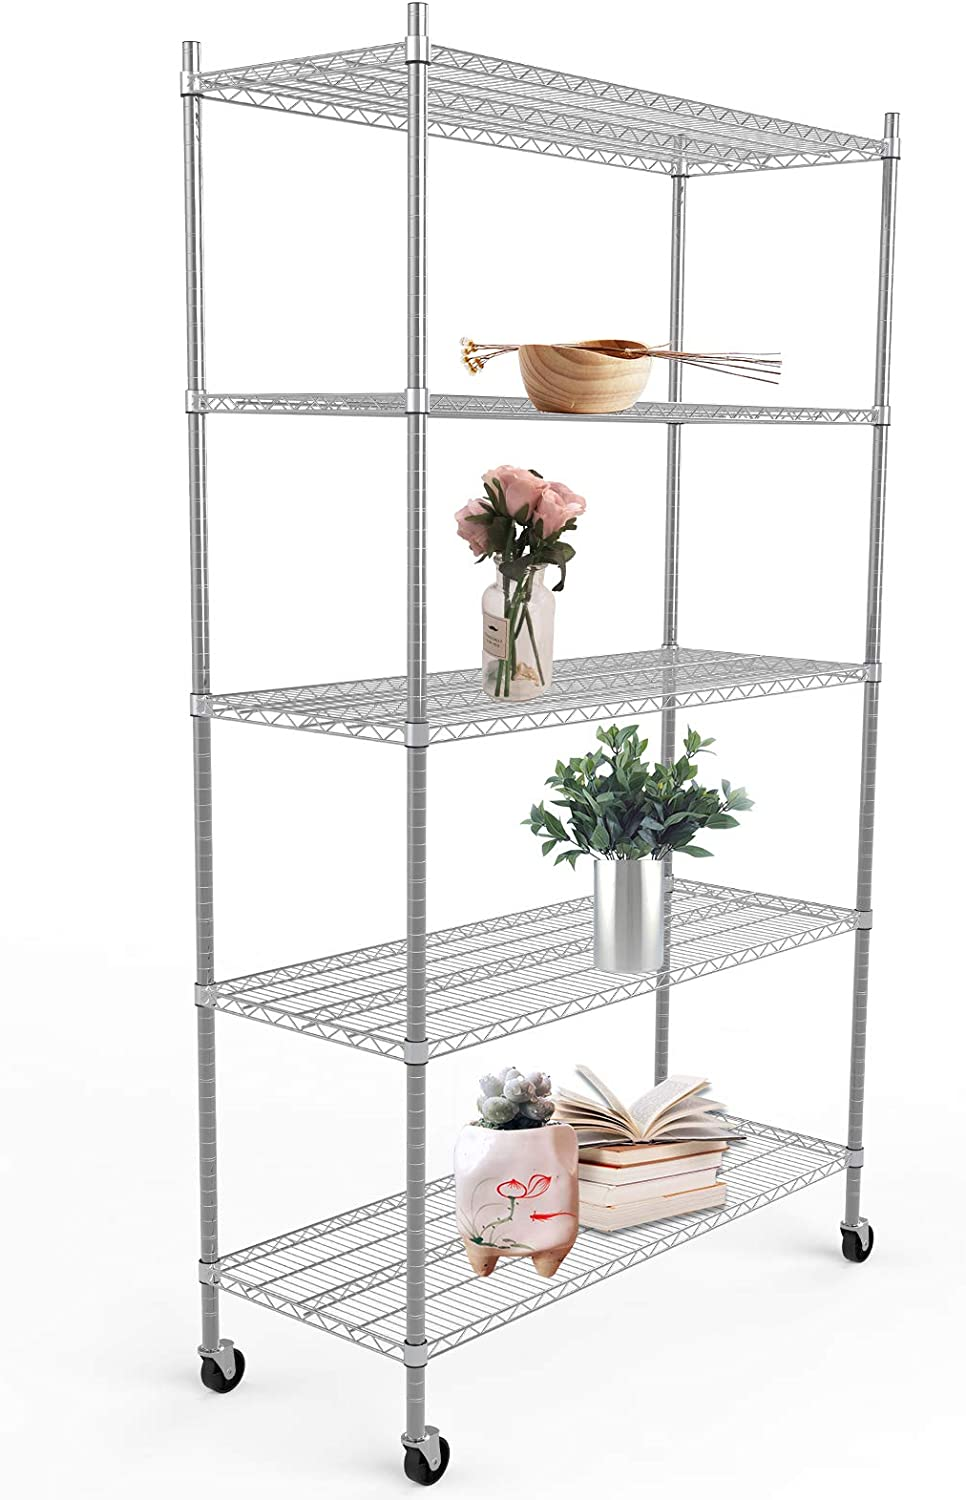 2 Shelf Unit Commercial Chrome Wire Shelving 18 x 72 18 Height